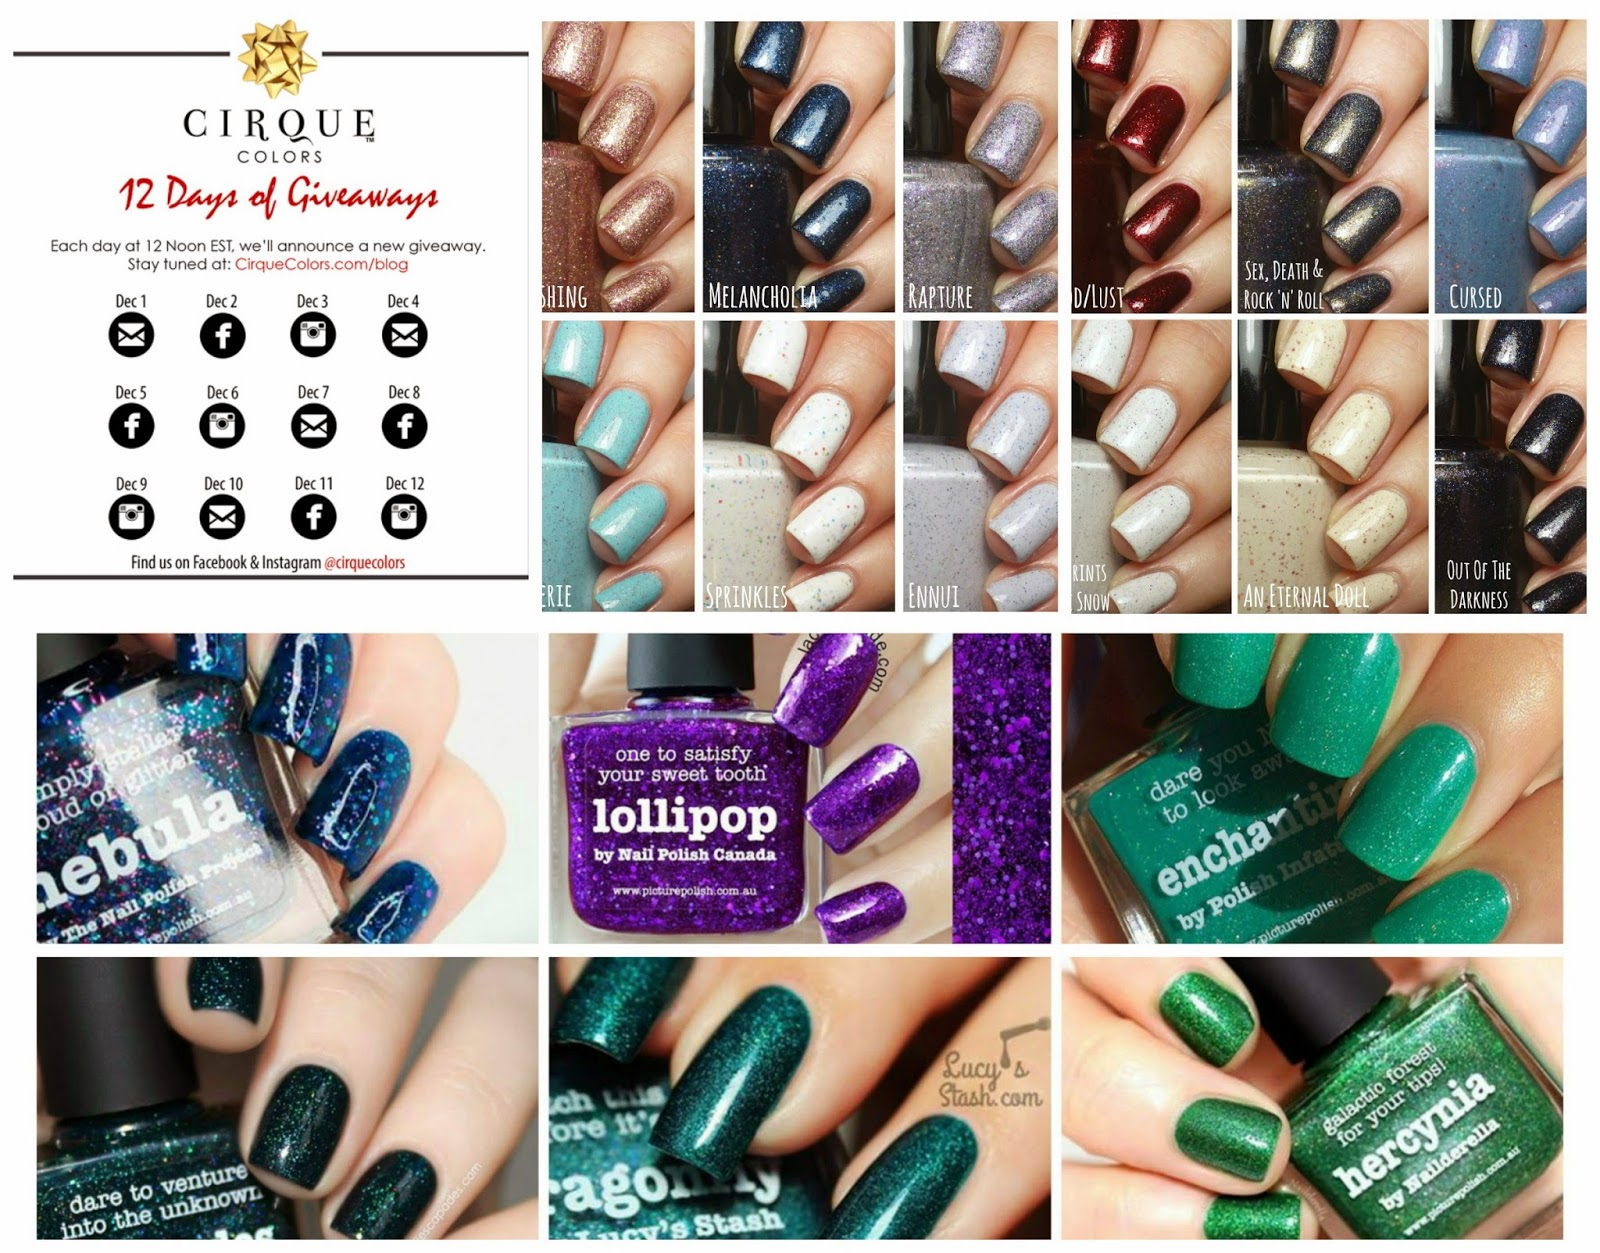 Squeaky News #2 with Renaissance Cosmetics, Cirque Colors and piCture pOlish